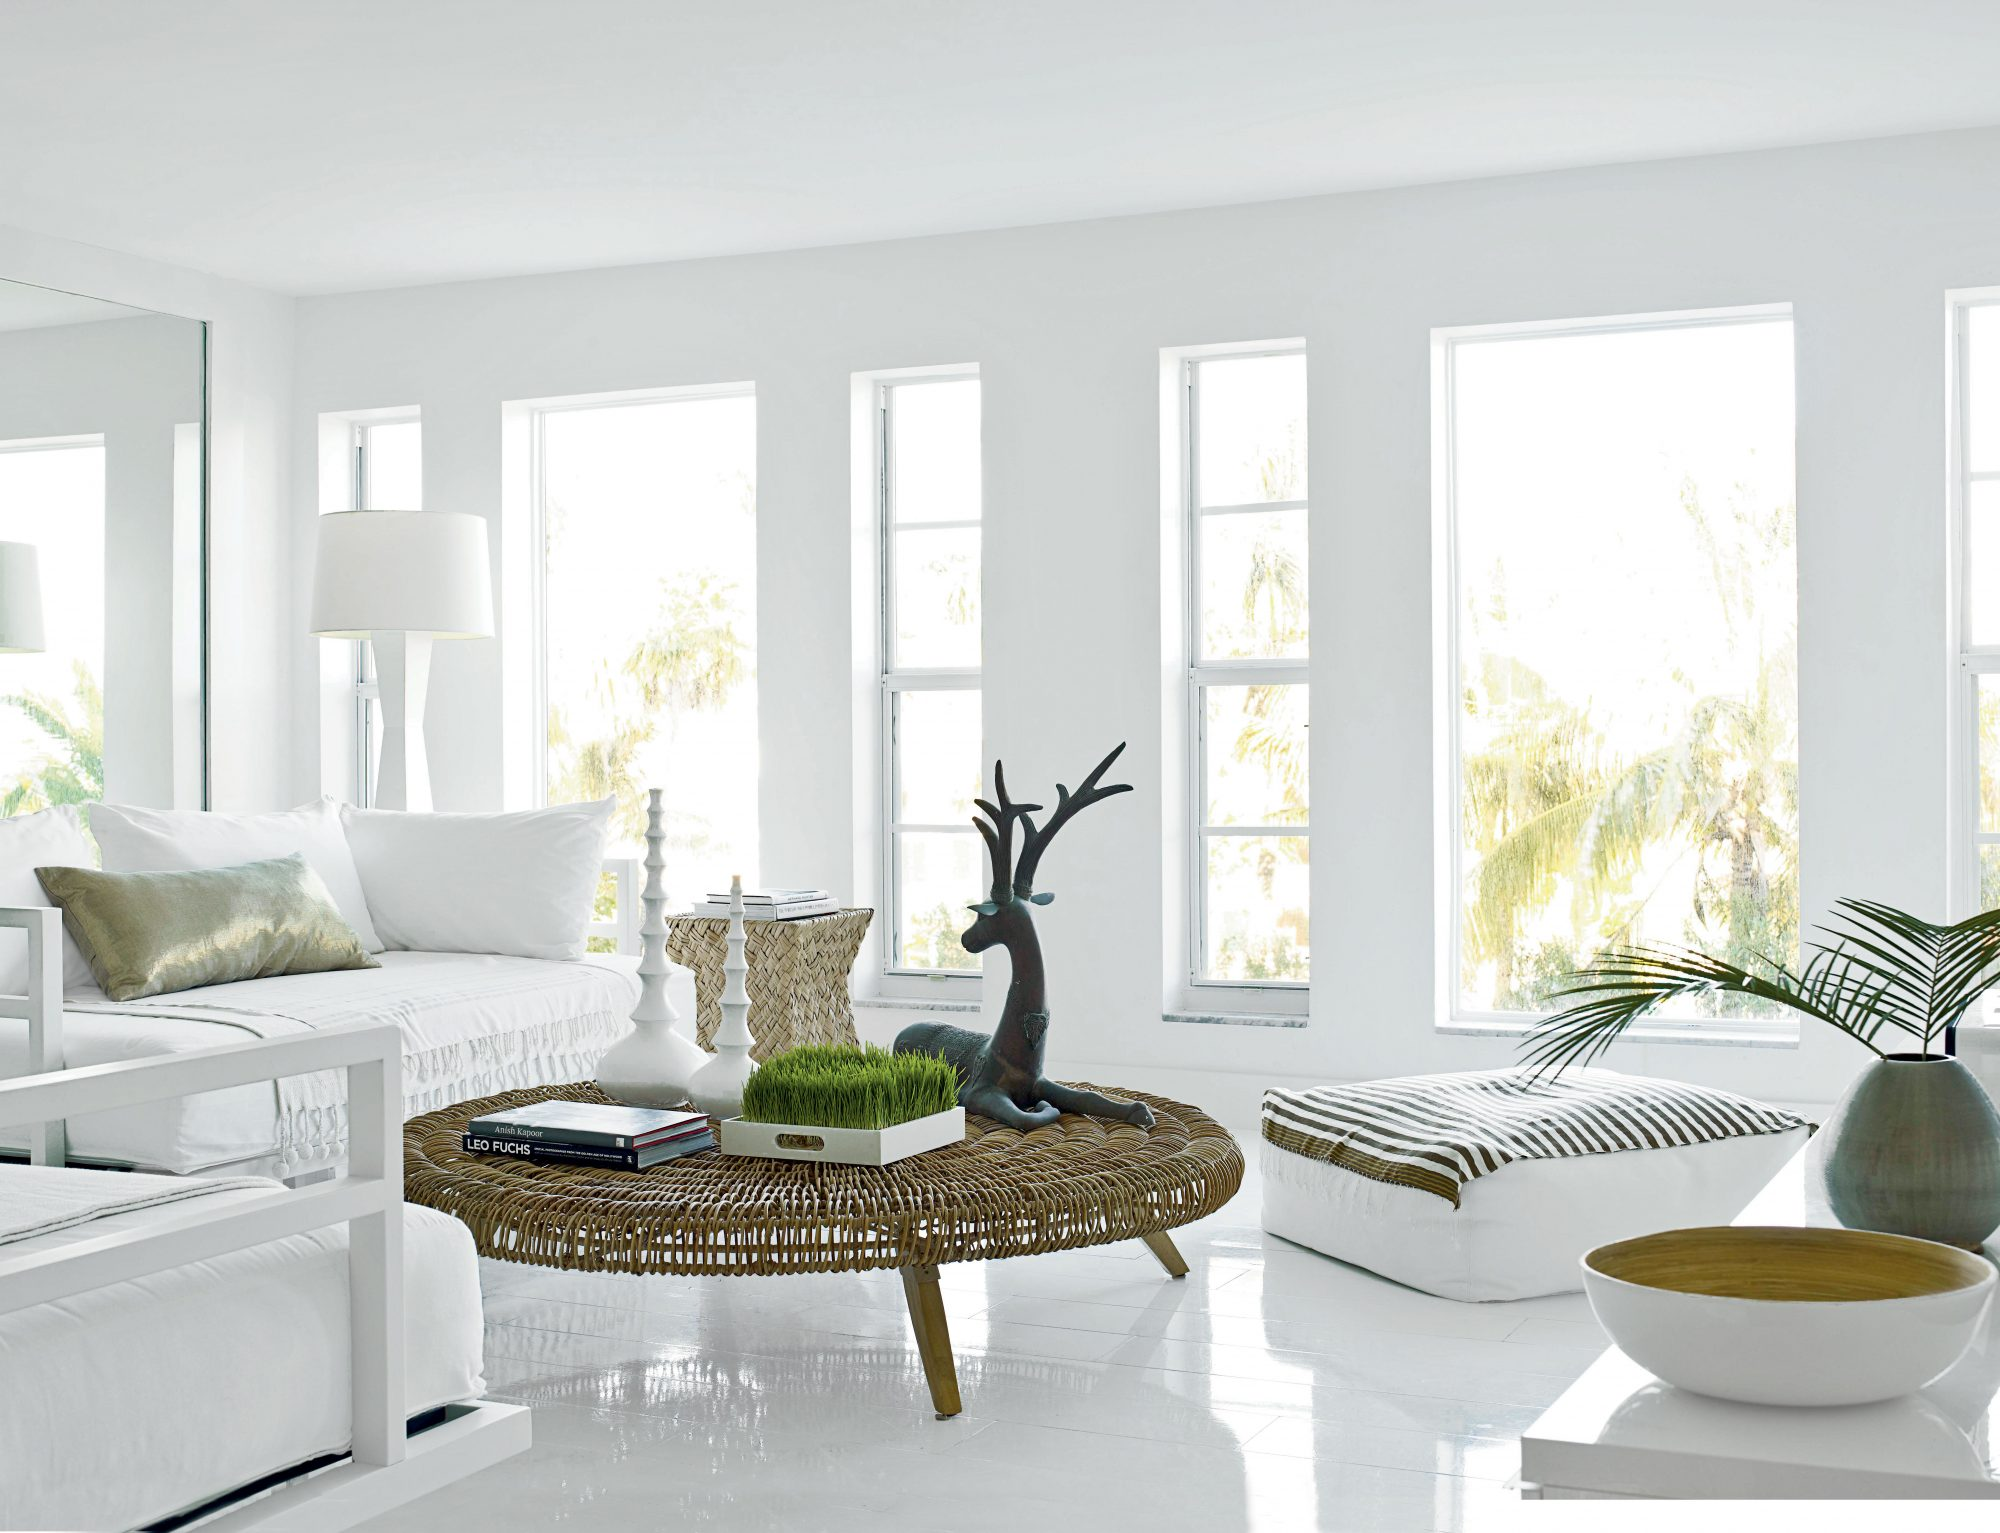 A bold piece of furniture—such as this dark, round wicker table—brings unexpected warmth and personality to the room.